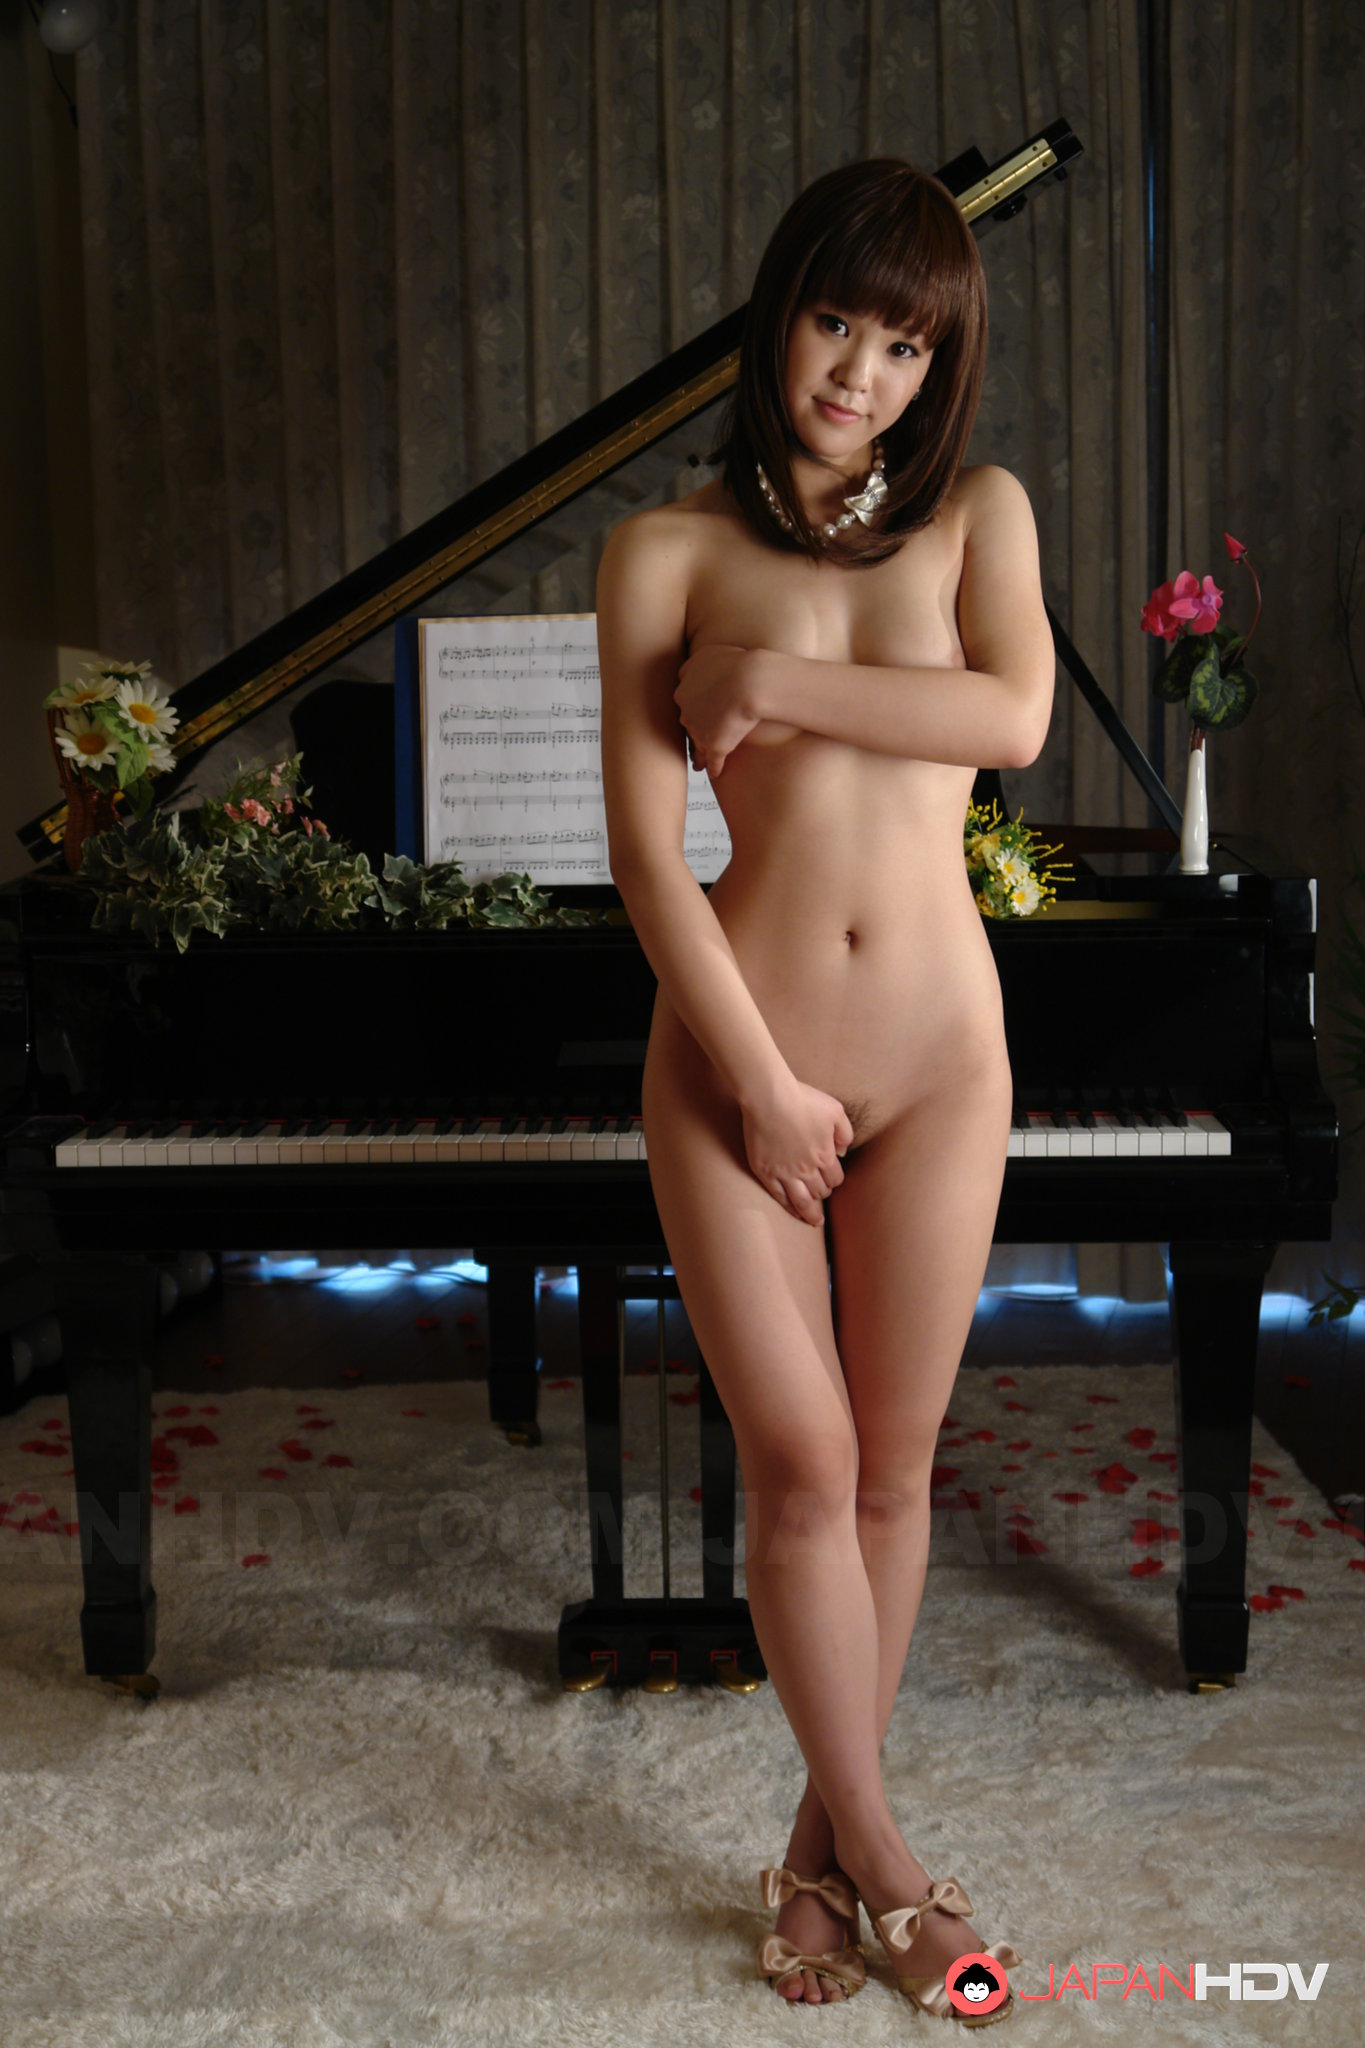 Naked Girl Plays The Piano-8436